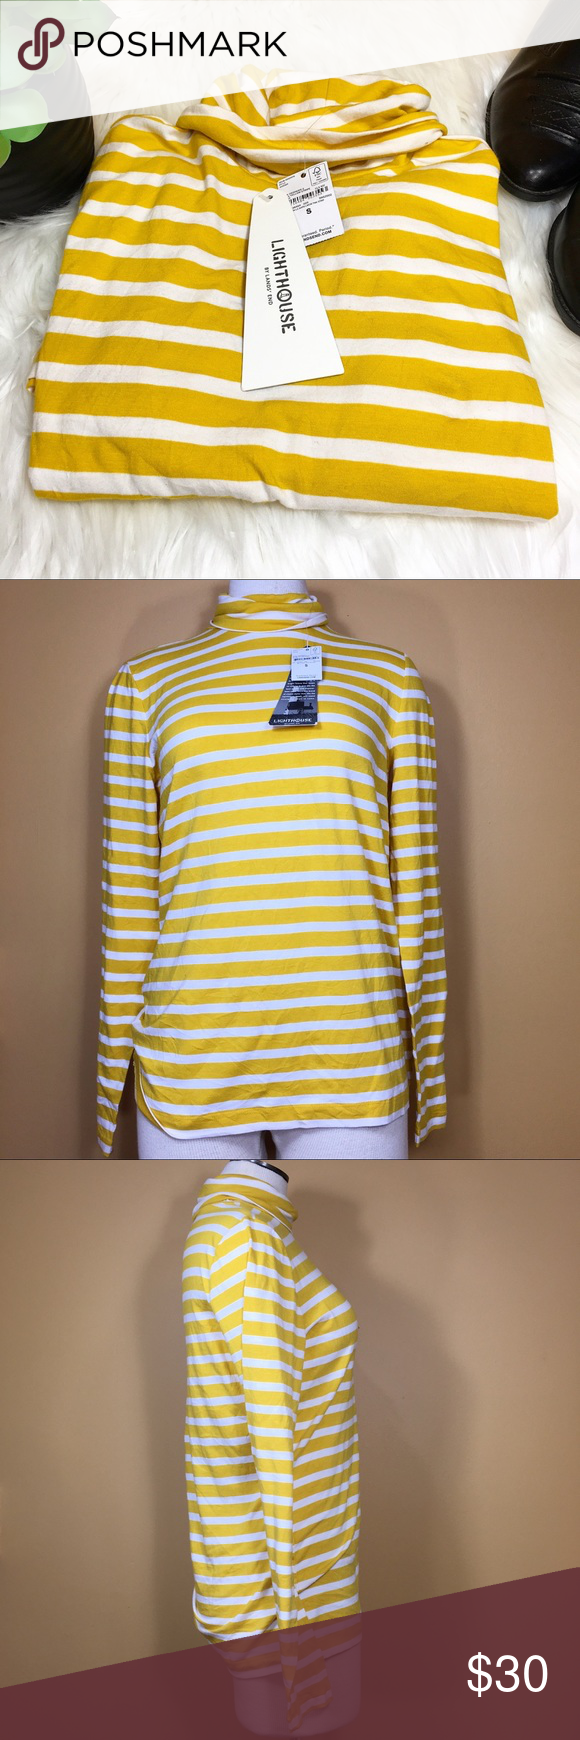 "NWT Yellow & White Striped Turtleneck Feeling a little gloomy? Have the winter blahs got you down? Slip into a little bit of sunshine with this NWT yellow and white striped turtleneck from Lands' End! Pair with a long denim skirt for total 70's vibes!   Brand: Lands' End. Size small. Condition: New with tags. One small spot on shirt with sticky residue from sticker. Material: 56% Cotton, 38% rayon and 6% spandex.  Measurements (flat): Armpit to armpit: 18"" Waist: 16"" Bottom hem: 19"" Length…"